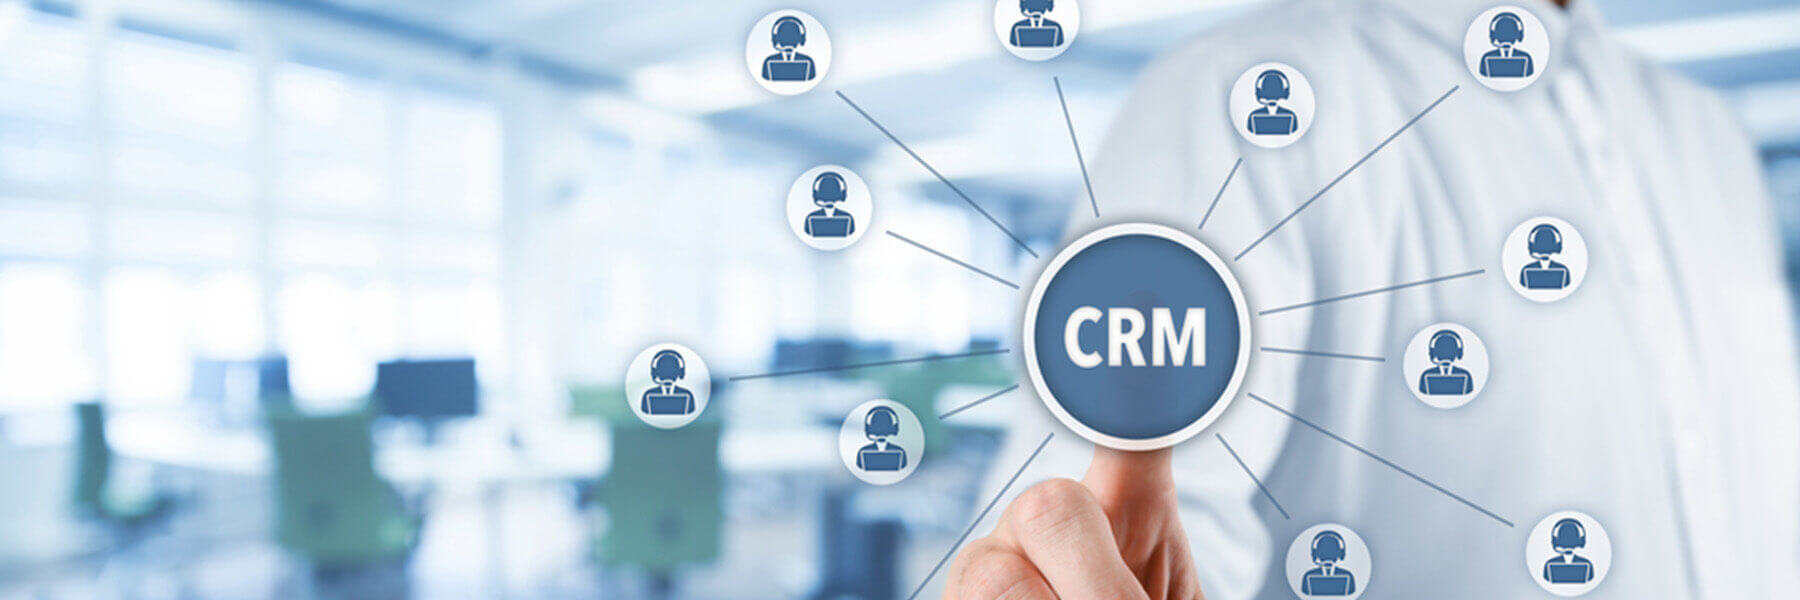 Top-notch CRM Solutions for your business